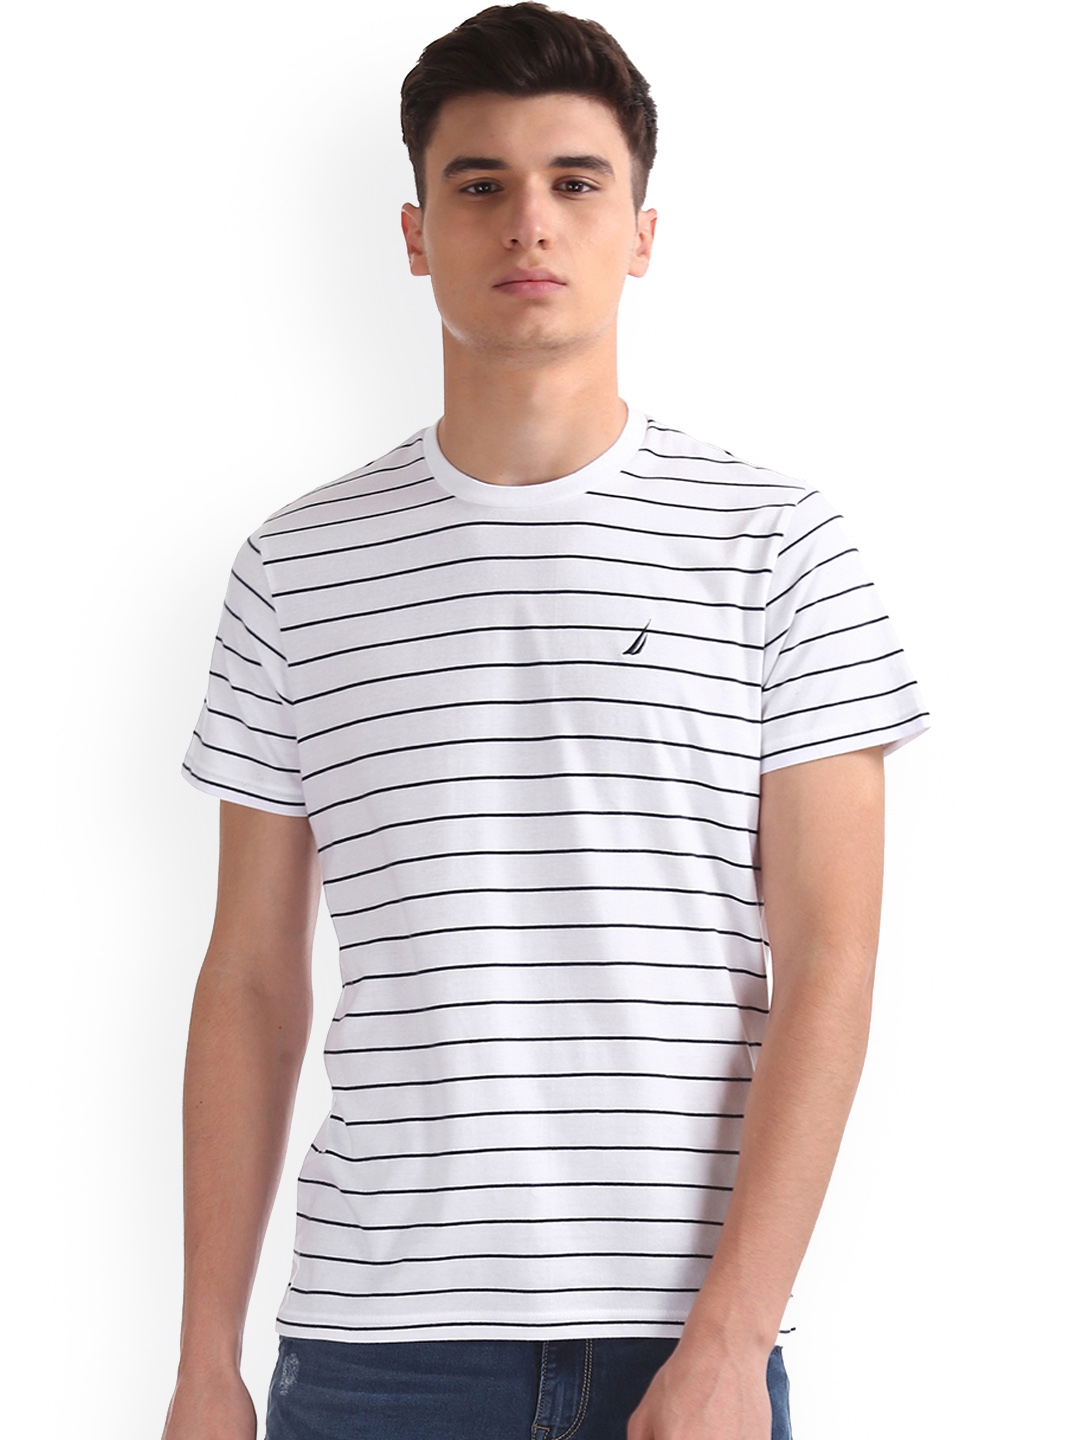 193b37c326 Buy Nautica Men White Striped Round Neck T Shirt - Tshirts for Men ...